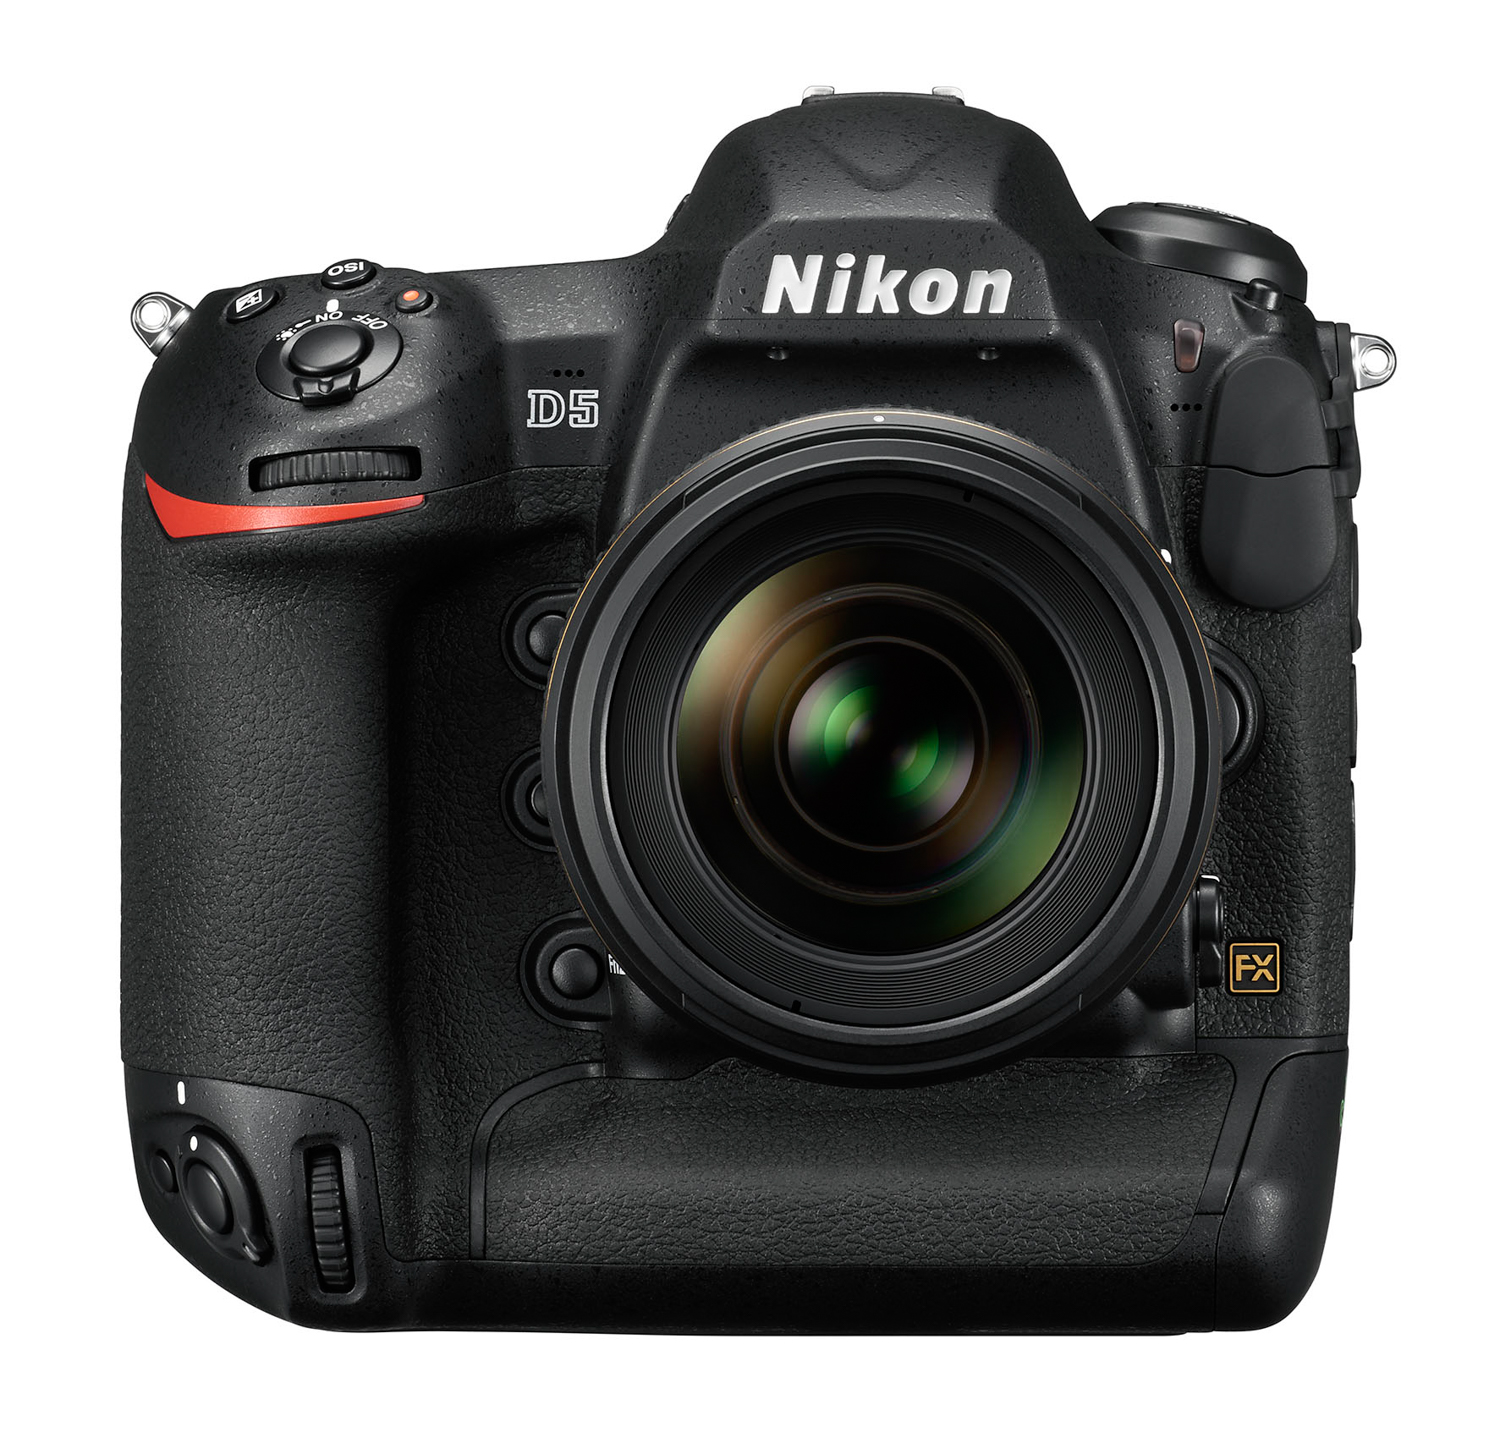 https://i2.wp.com/digital-photography-school.com/wp-content/uploads/2019/09/Nikon-D6-announcement-1.jpg?resize=1500%2C1438&ssl=1